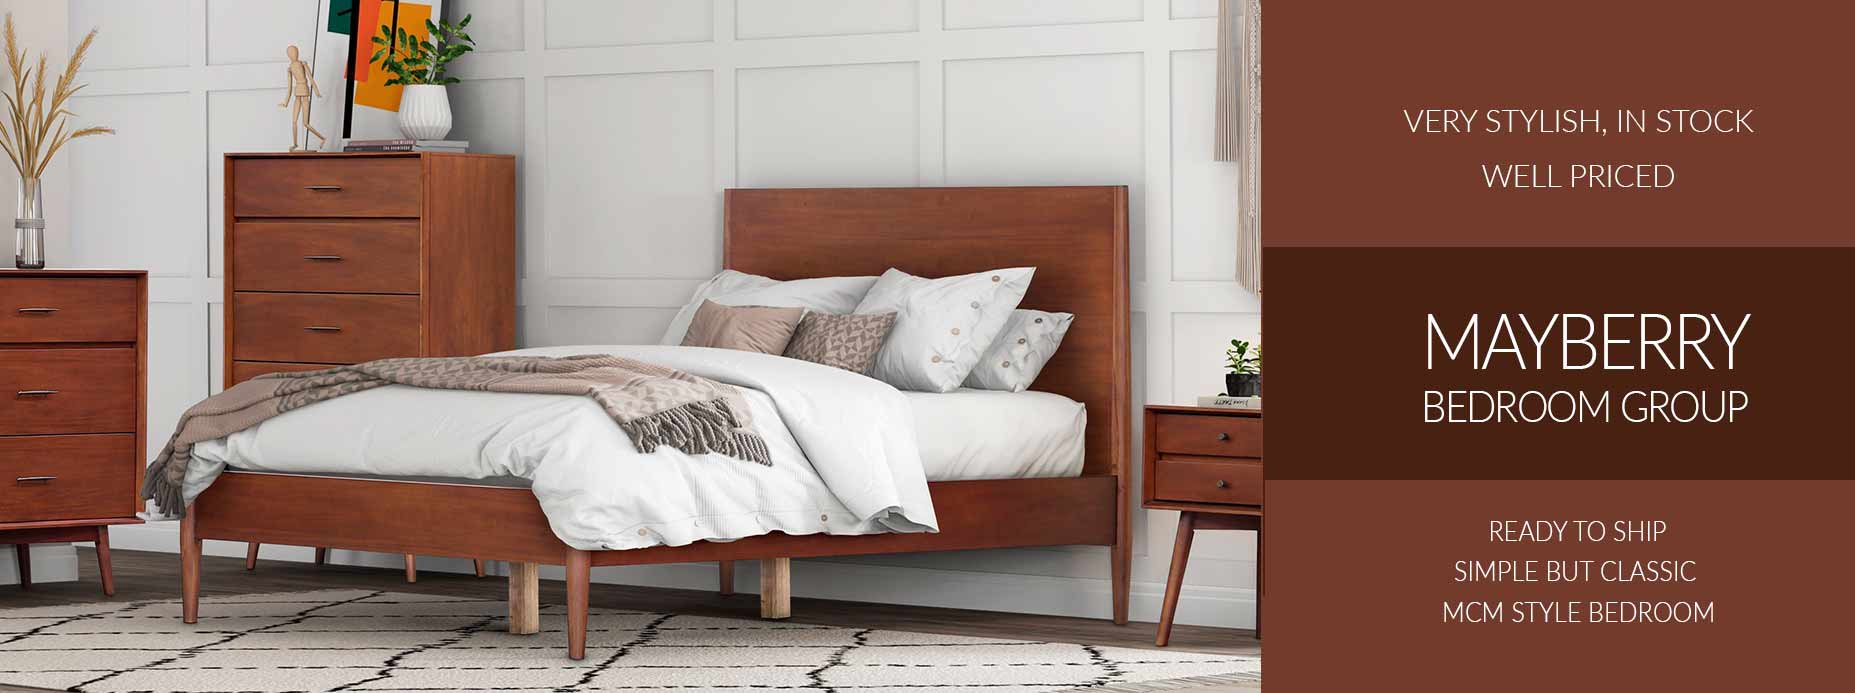 Mid Century Modern Style Mayberry Bedrooms